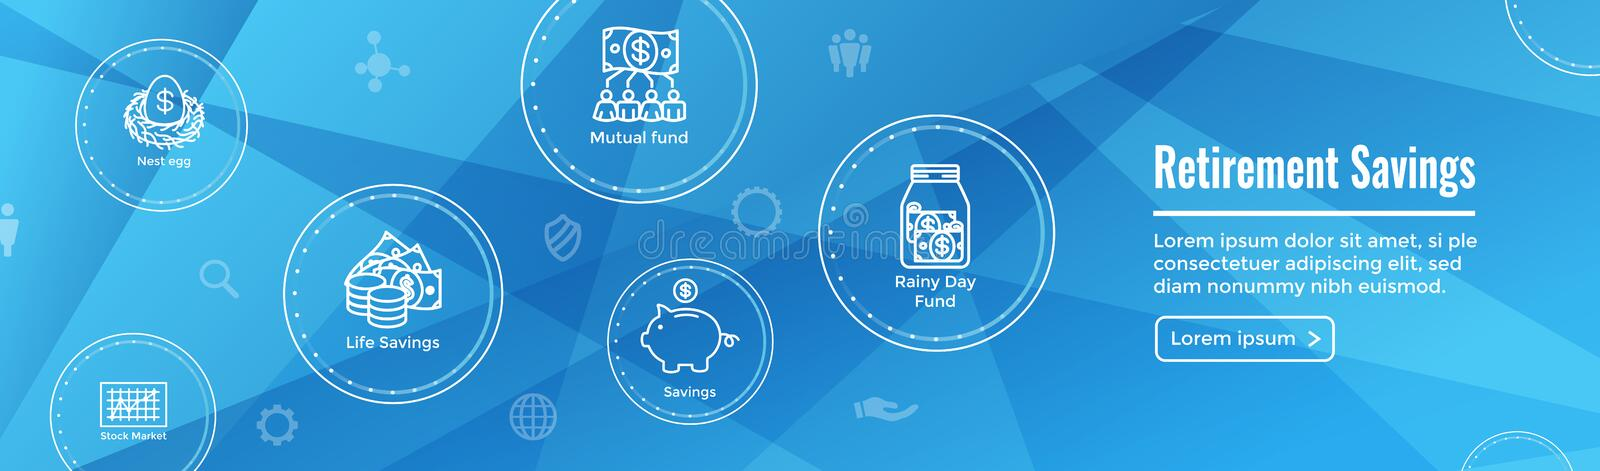 Retirement Account and Savings Icon Set Web Header Banner w Mutual Fund, Roth IRA, etc stock illustration